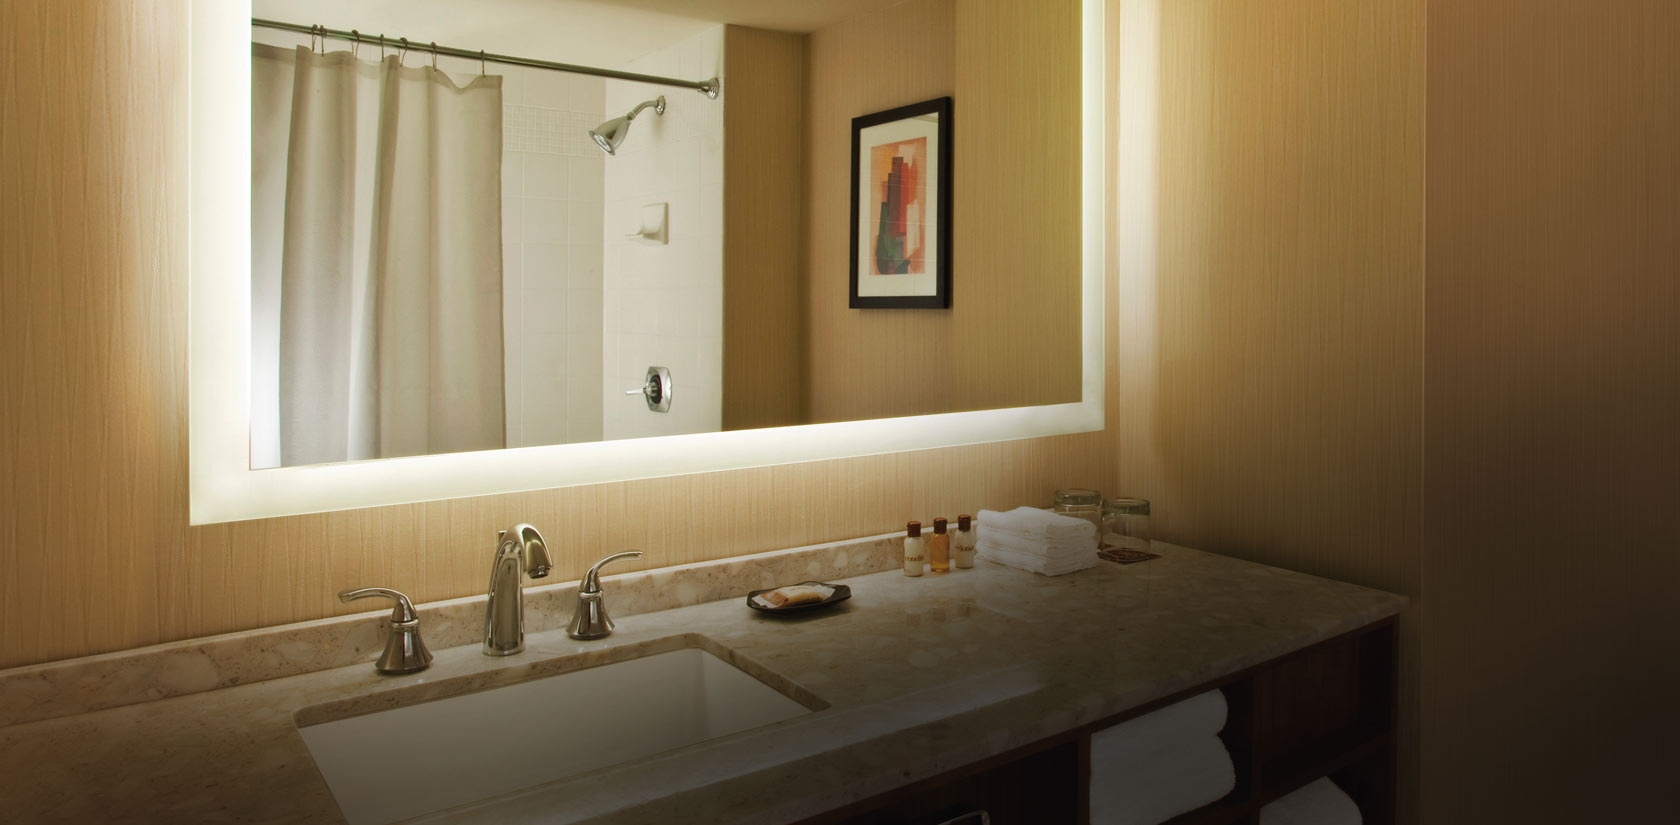 Bathroom Mirror With Lighted Frame1680 X 825